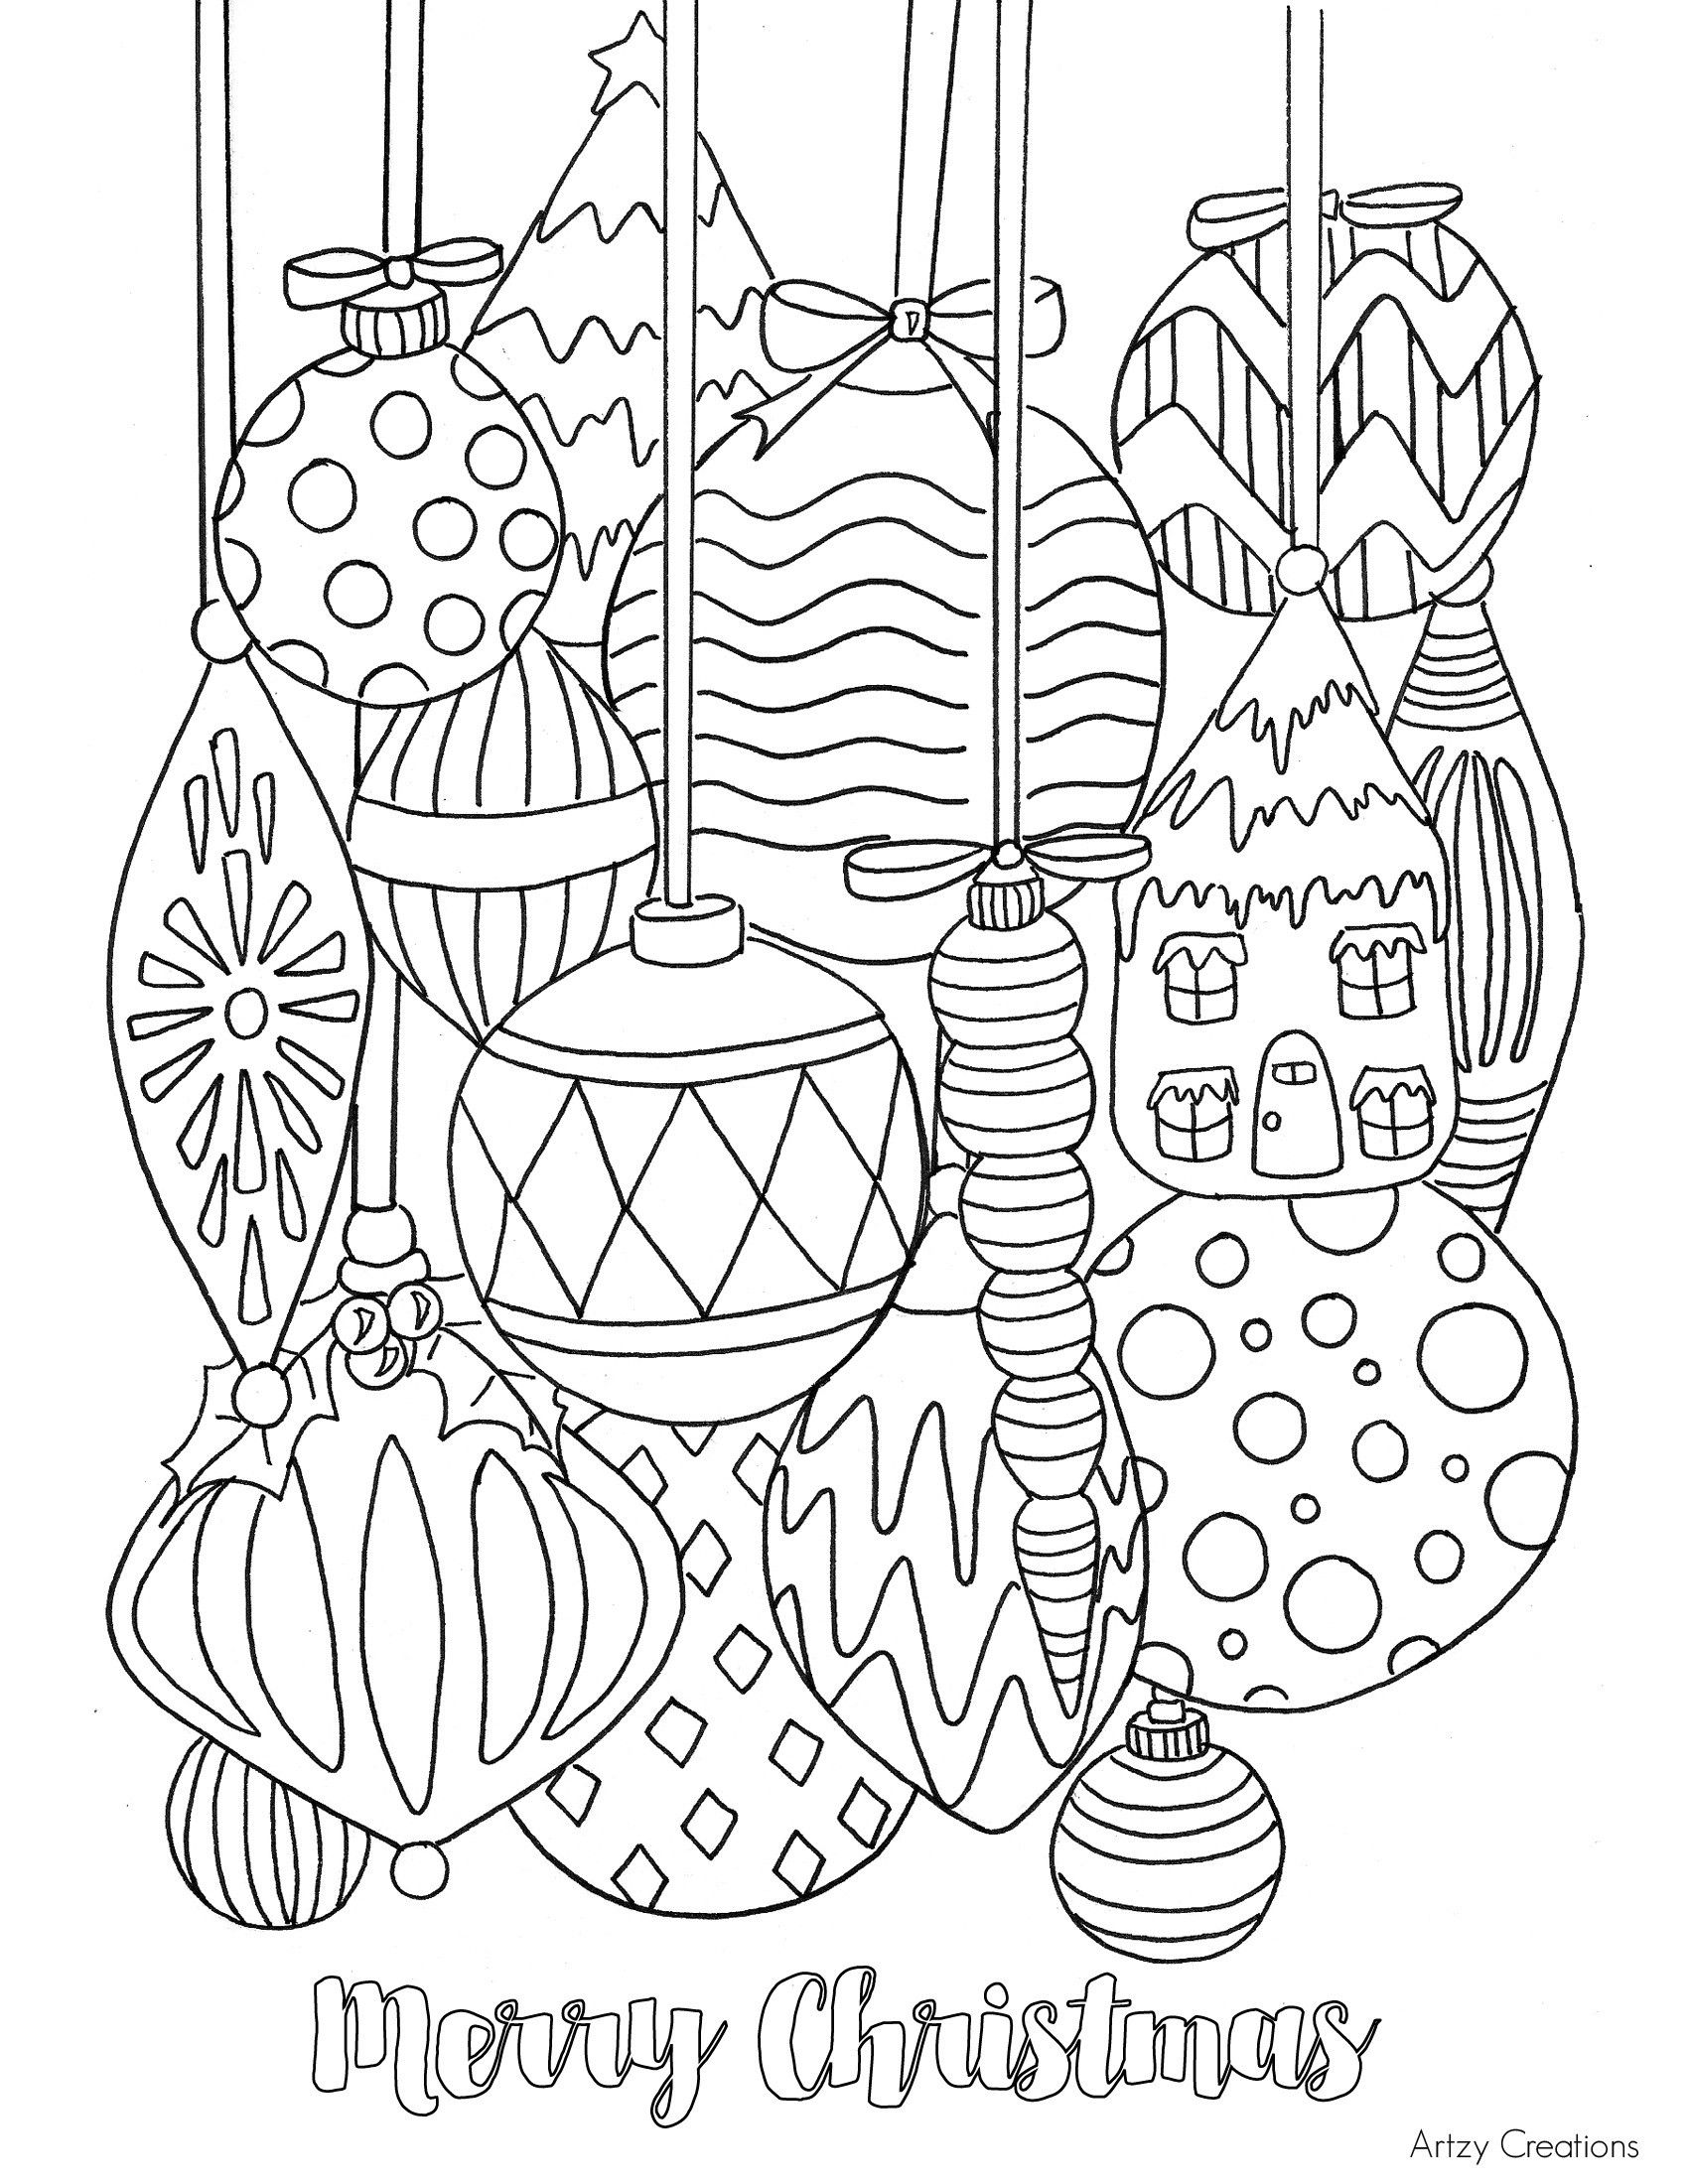 Printable Christmas Coloring Pages For Adults Christmas Coloring Printable Christmas Coloring Pages Free Christmas Coloring Pages Christmas Tree Coloring Page